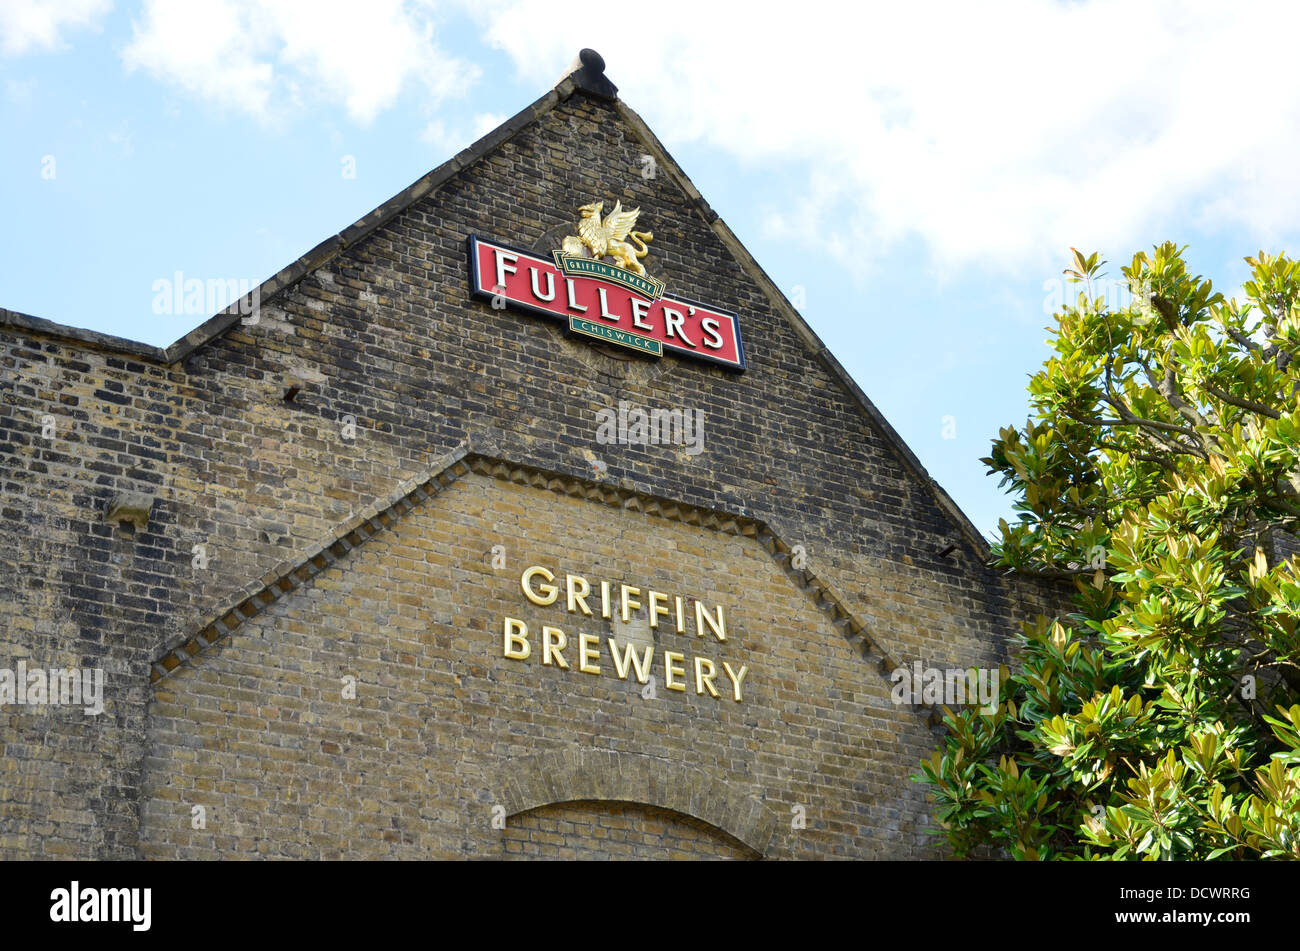 The Fuller's Griffin brewery in Chiswick, London - Stock Image